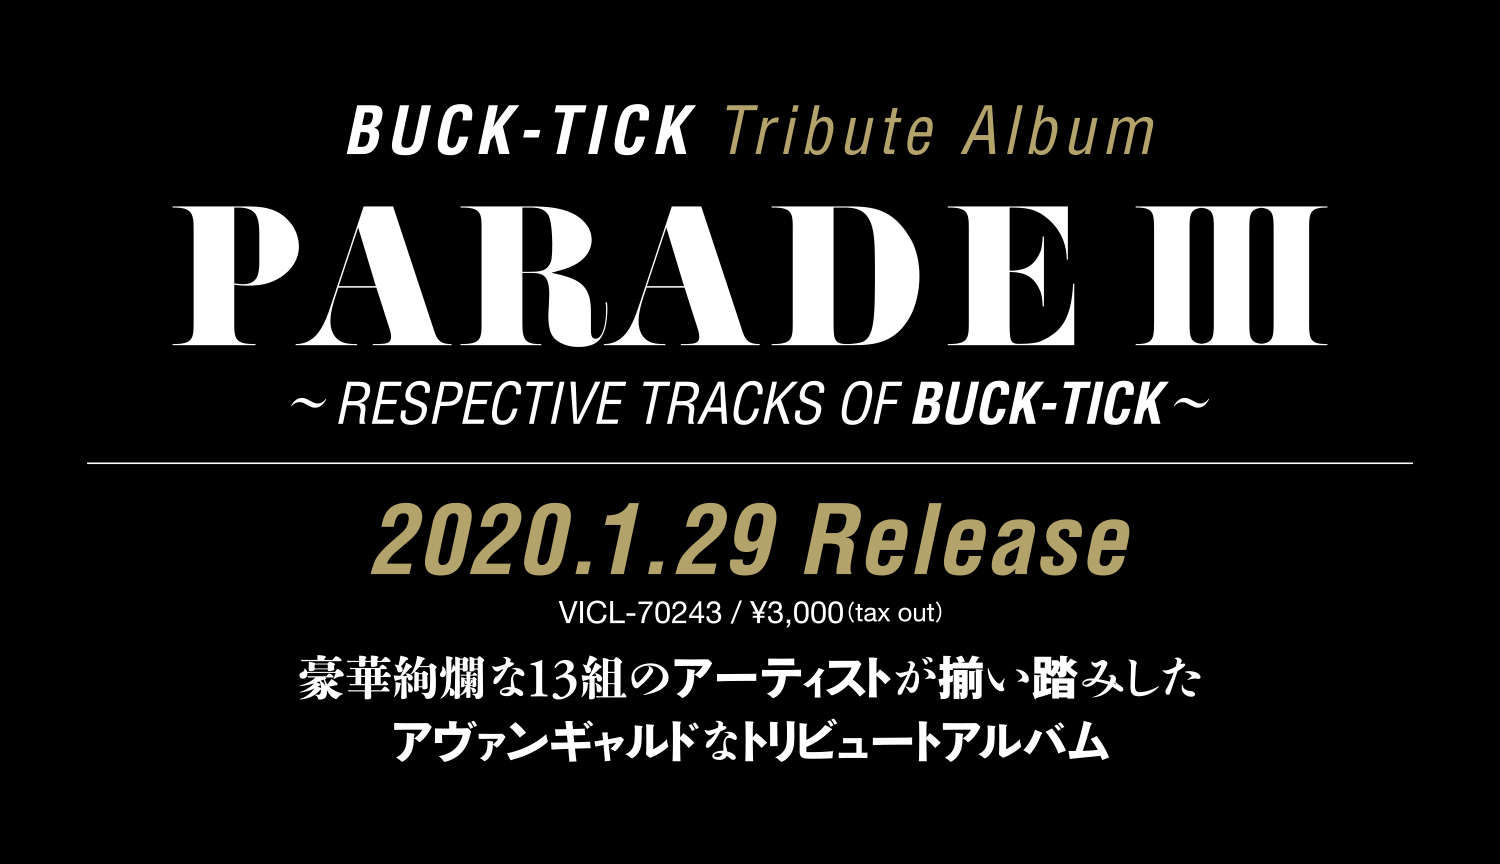 PARADE III ~RESPECTIVE TRACKS OF BUCK-TICK~